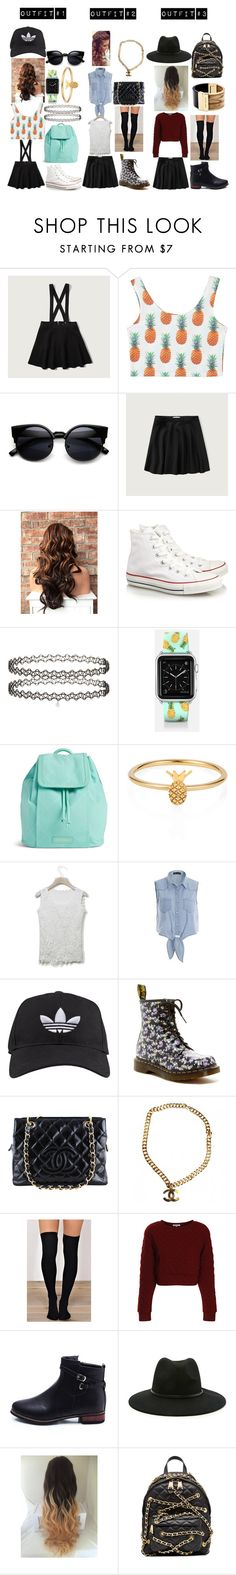 """""""#WhatWouldYouWear?"""" by izzy-ccix on Polyvore featuring Abercrombie & Fitch, Converse, Miss Selfridge, Casetify, Vera Bradley, Lee Renee, Chicwish, adidas, Dr. Martens and Chanel"""